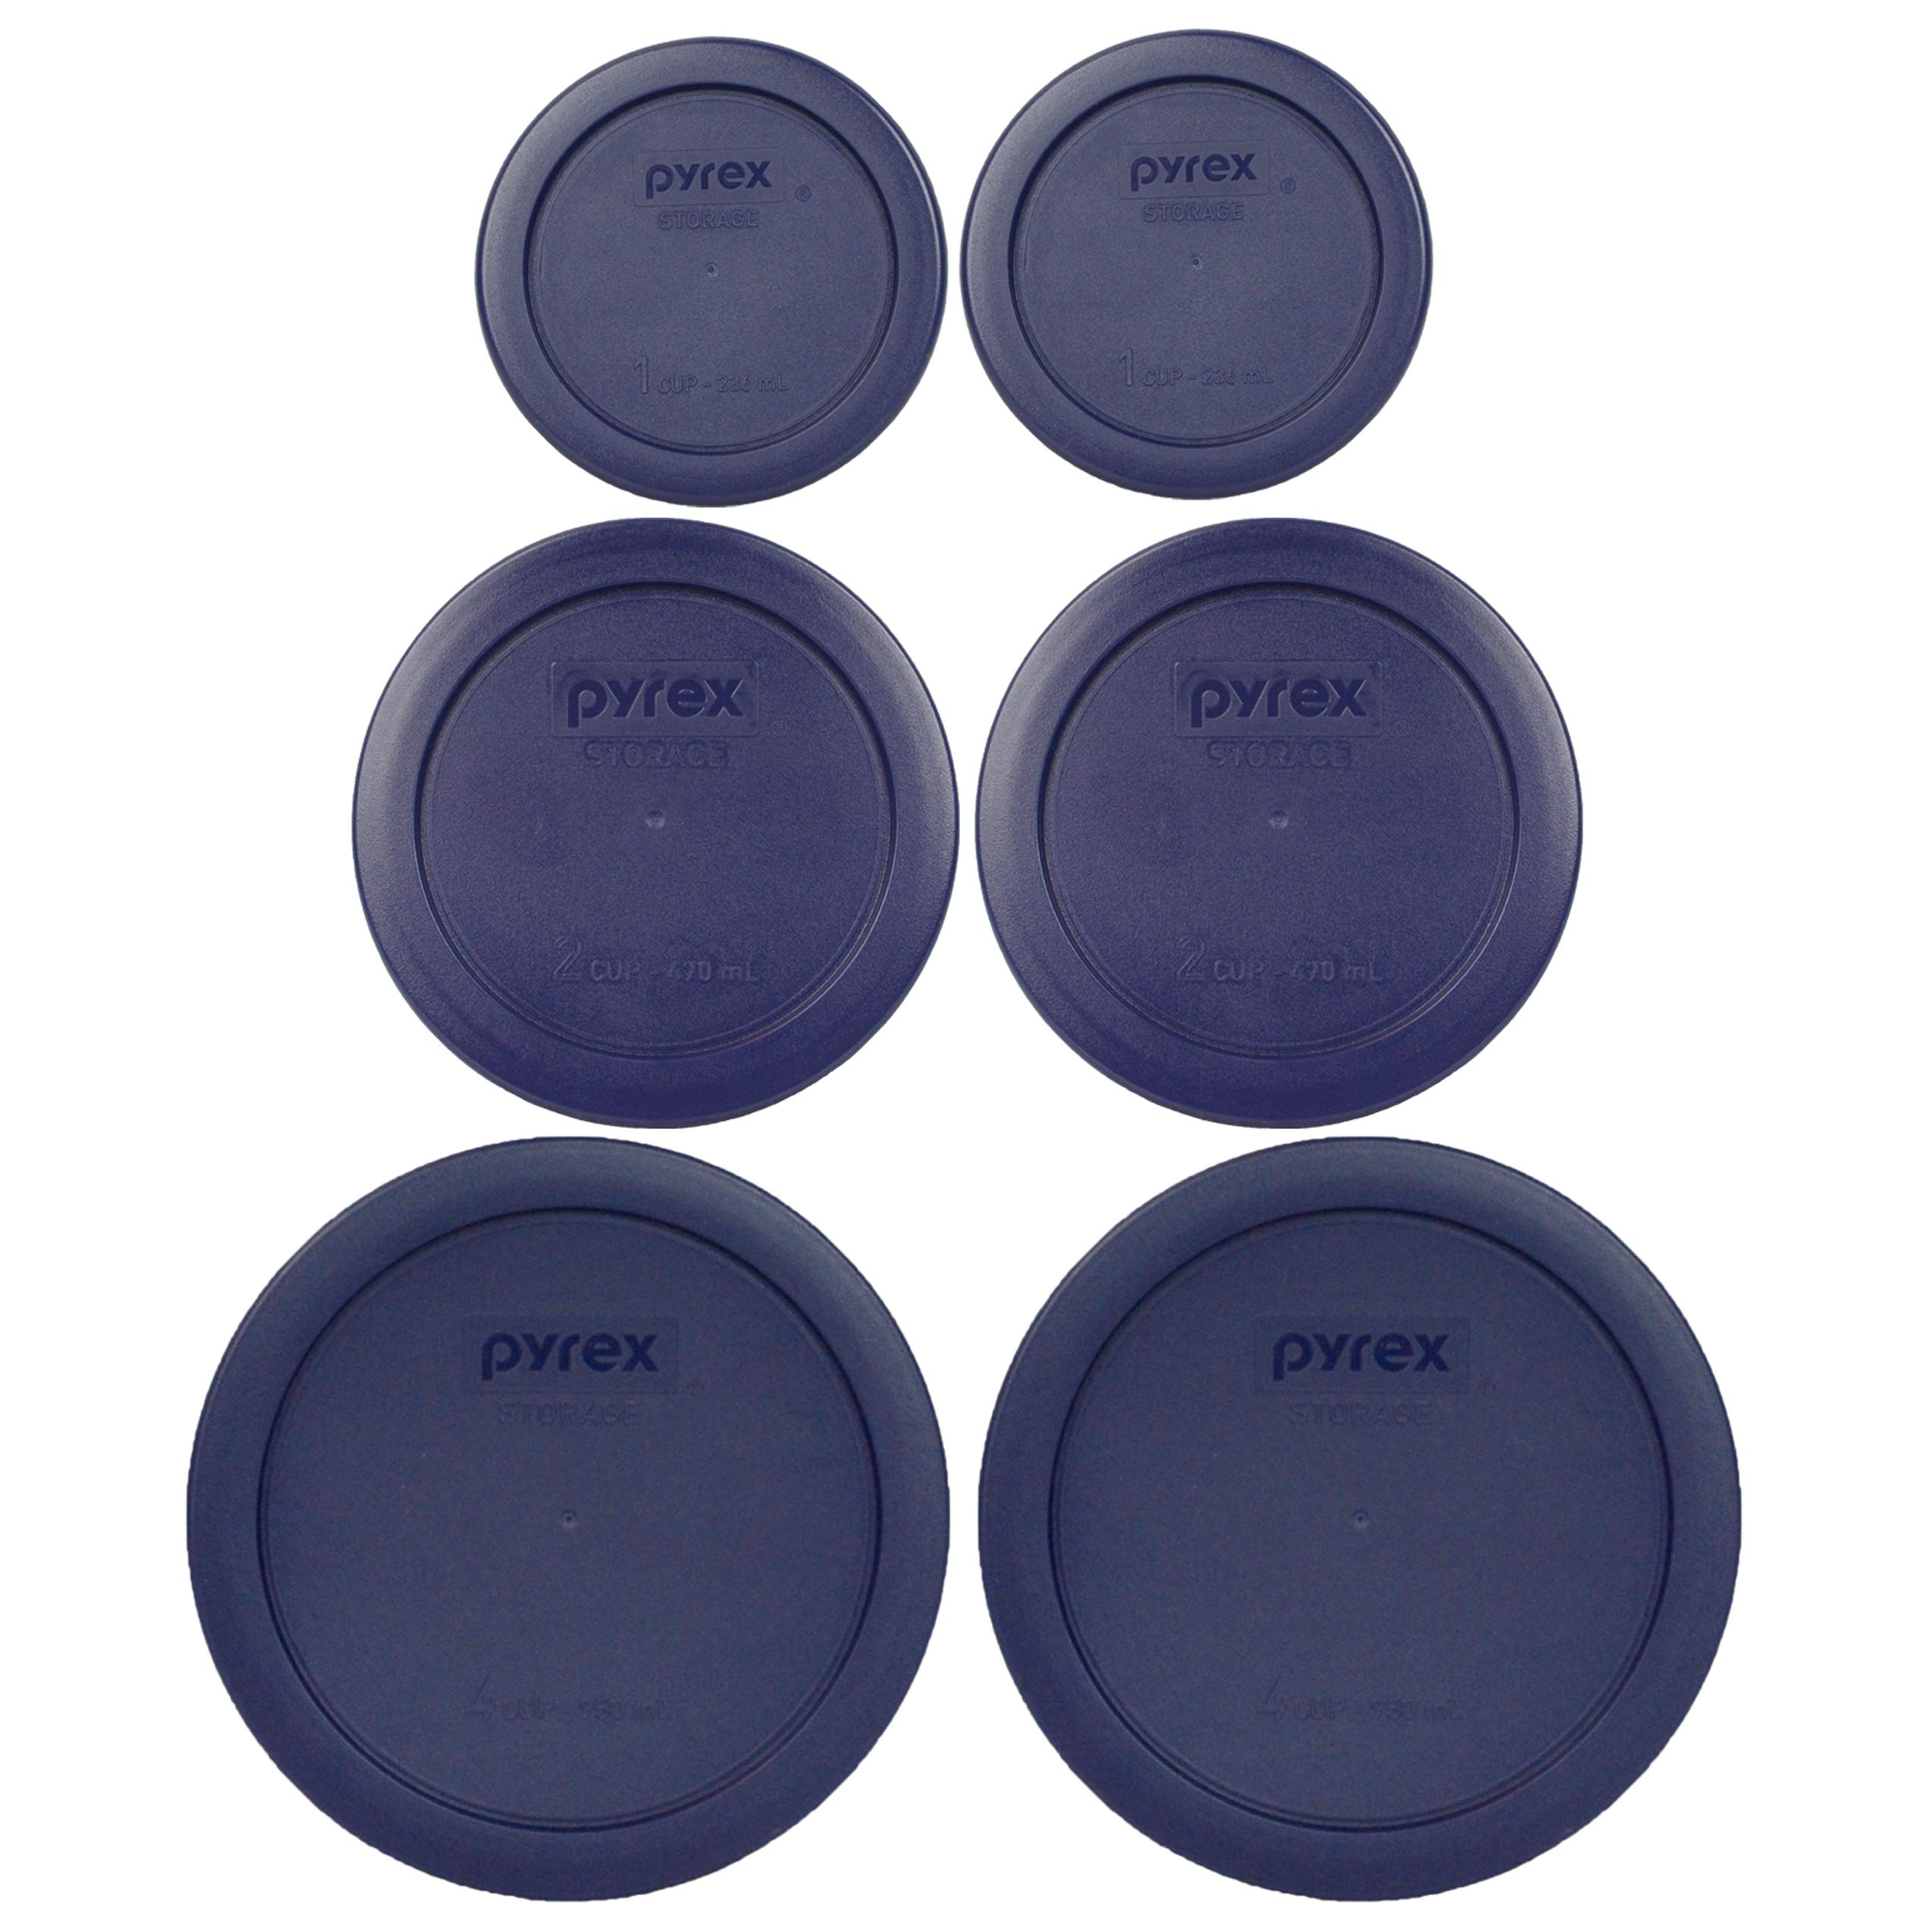 Pyrex (2) 7202-PC 1 Cup (2) 7200-PC 2 Cup (2) 7201-PC 4 Cup Blue Replacement Lids